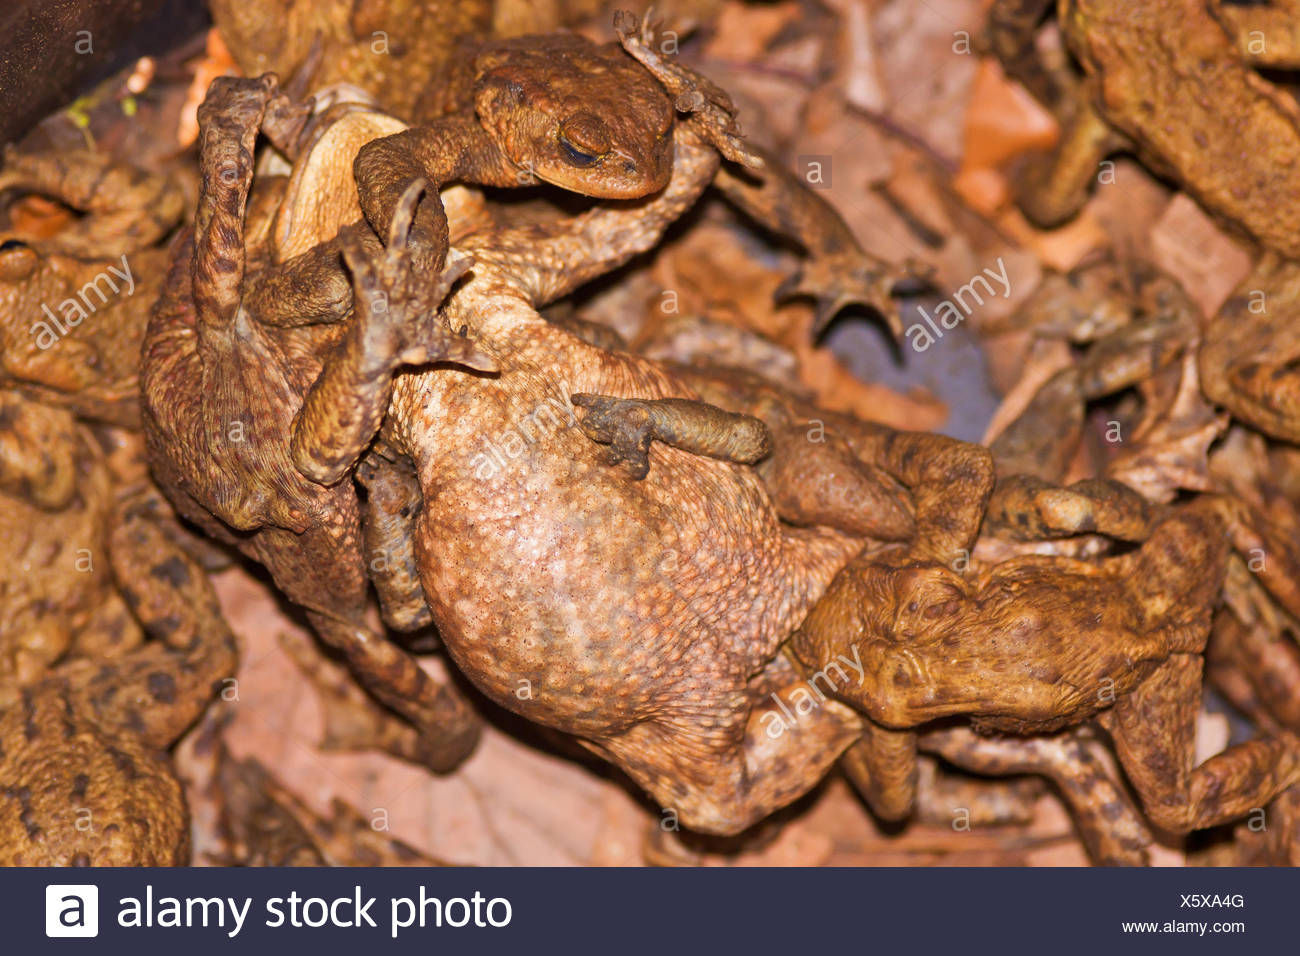 Toads, struggling in the bucket at the protective fence during the toad migration, - Stock Image